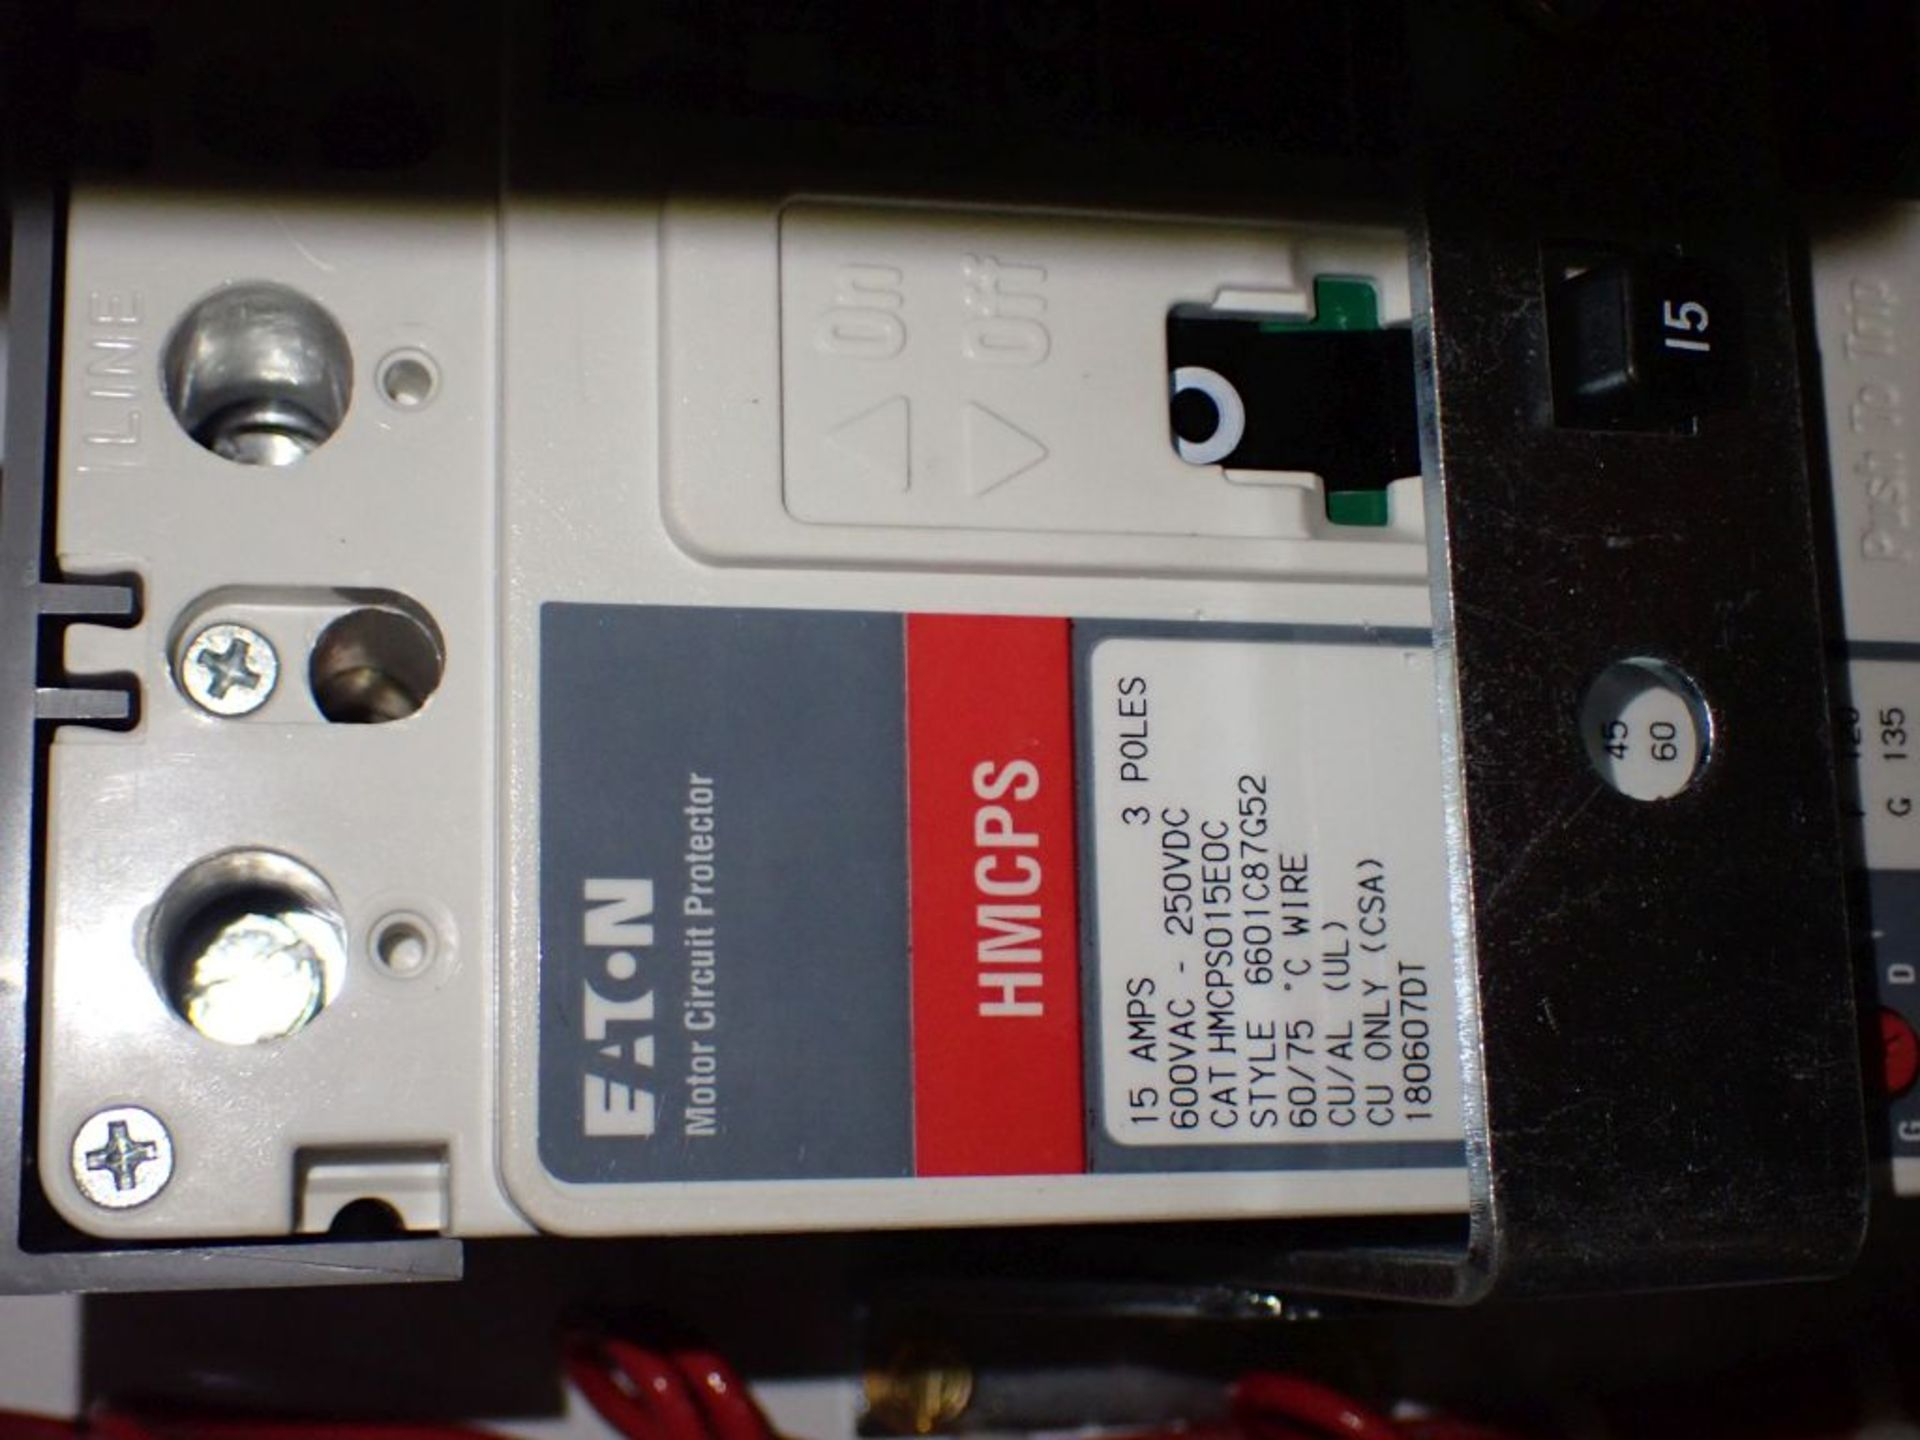 Eaton Freedom 2100 Series Motor Control Center | (11) F206-30A-10HP; (5) F206-15A-10HP; (1) SVX900- - Image 76 of 102